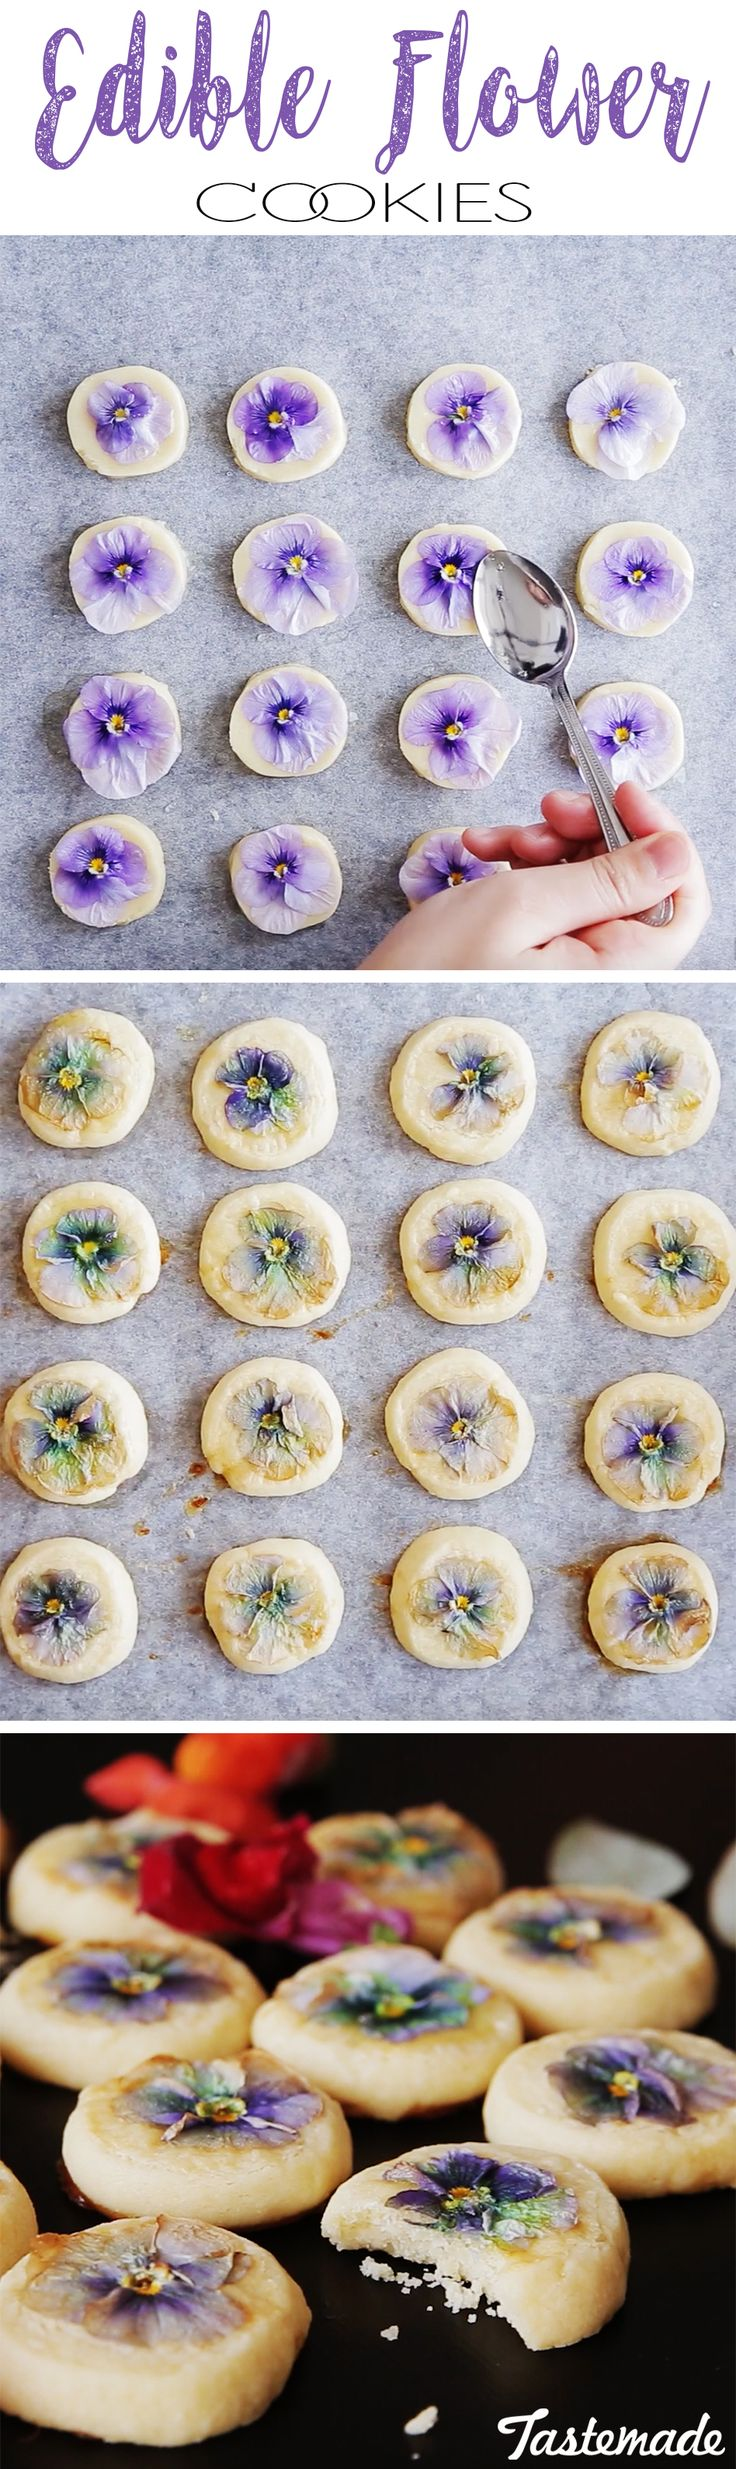 These edible flower cookies are so pretty your guest won't know whether to eat them or stash them in their pockets ;)